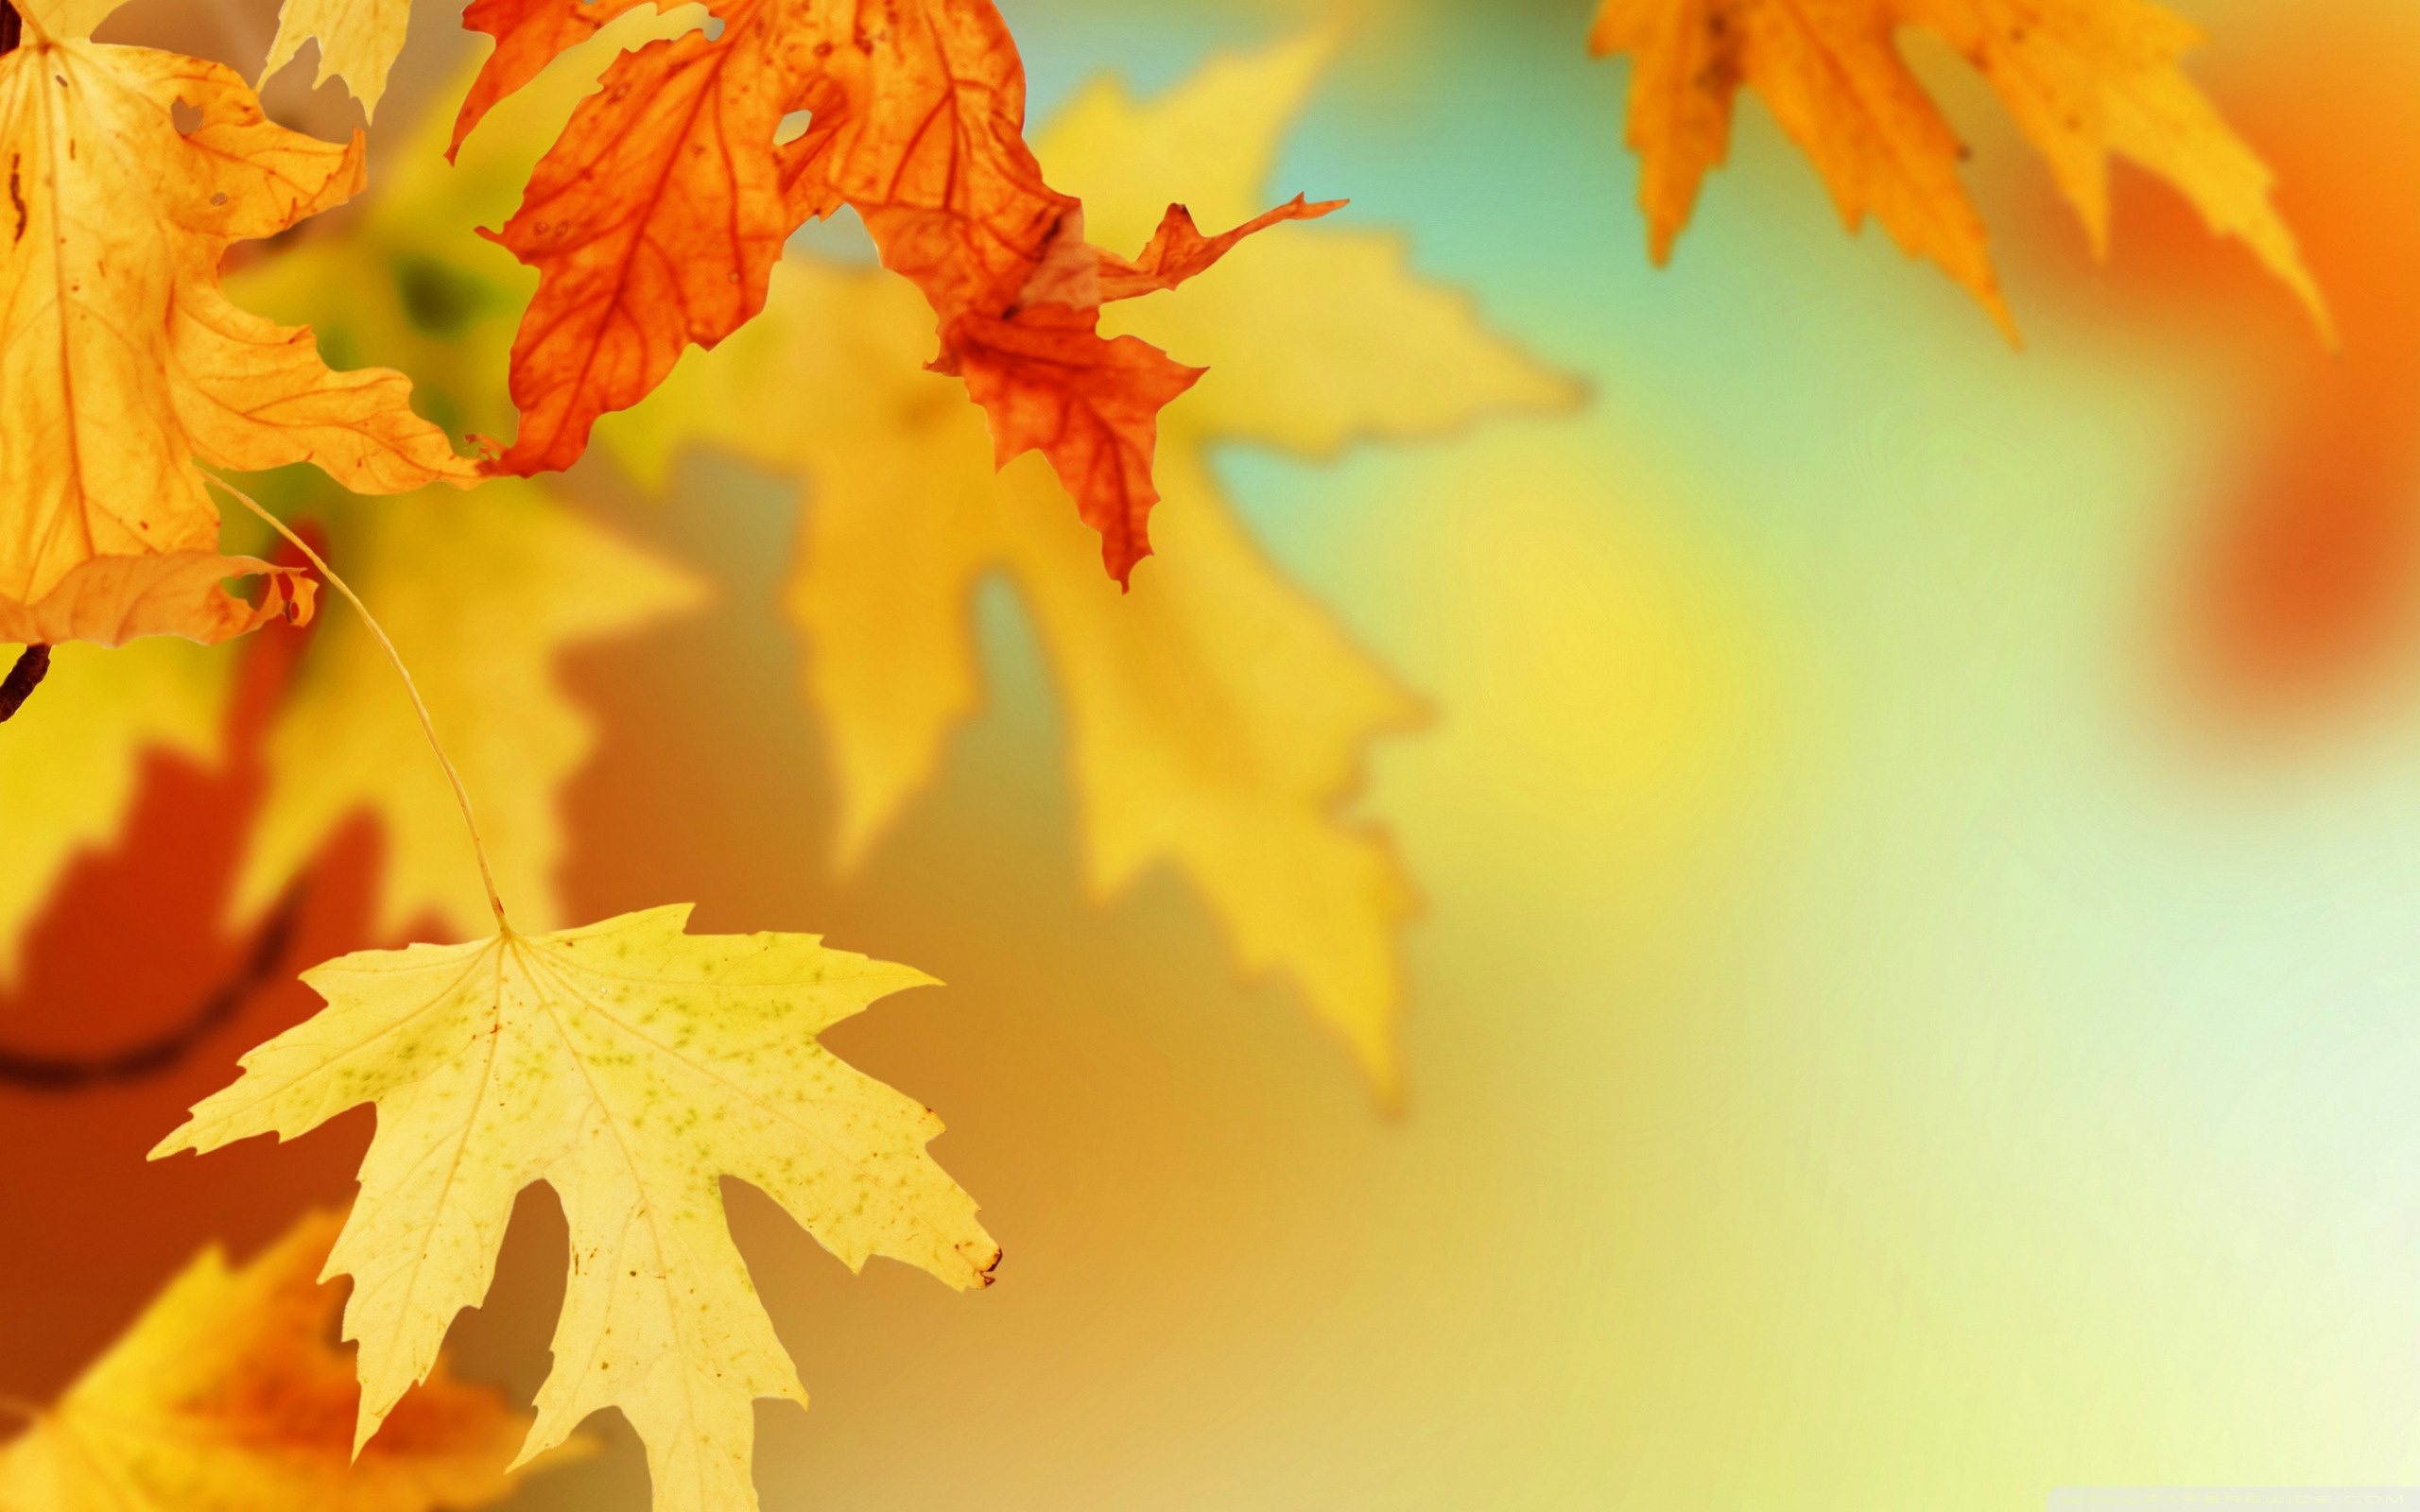 Free Desktop Wallpaper Autumn Leaves: Free Autumn Leaves Wallpaper